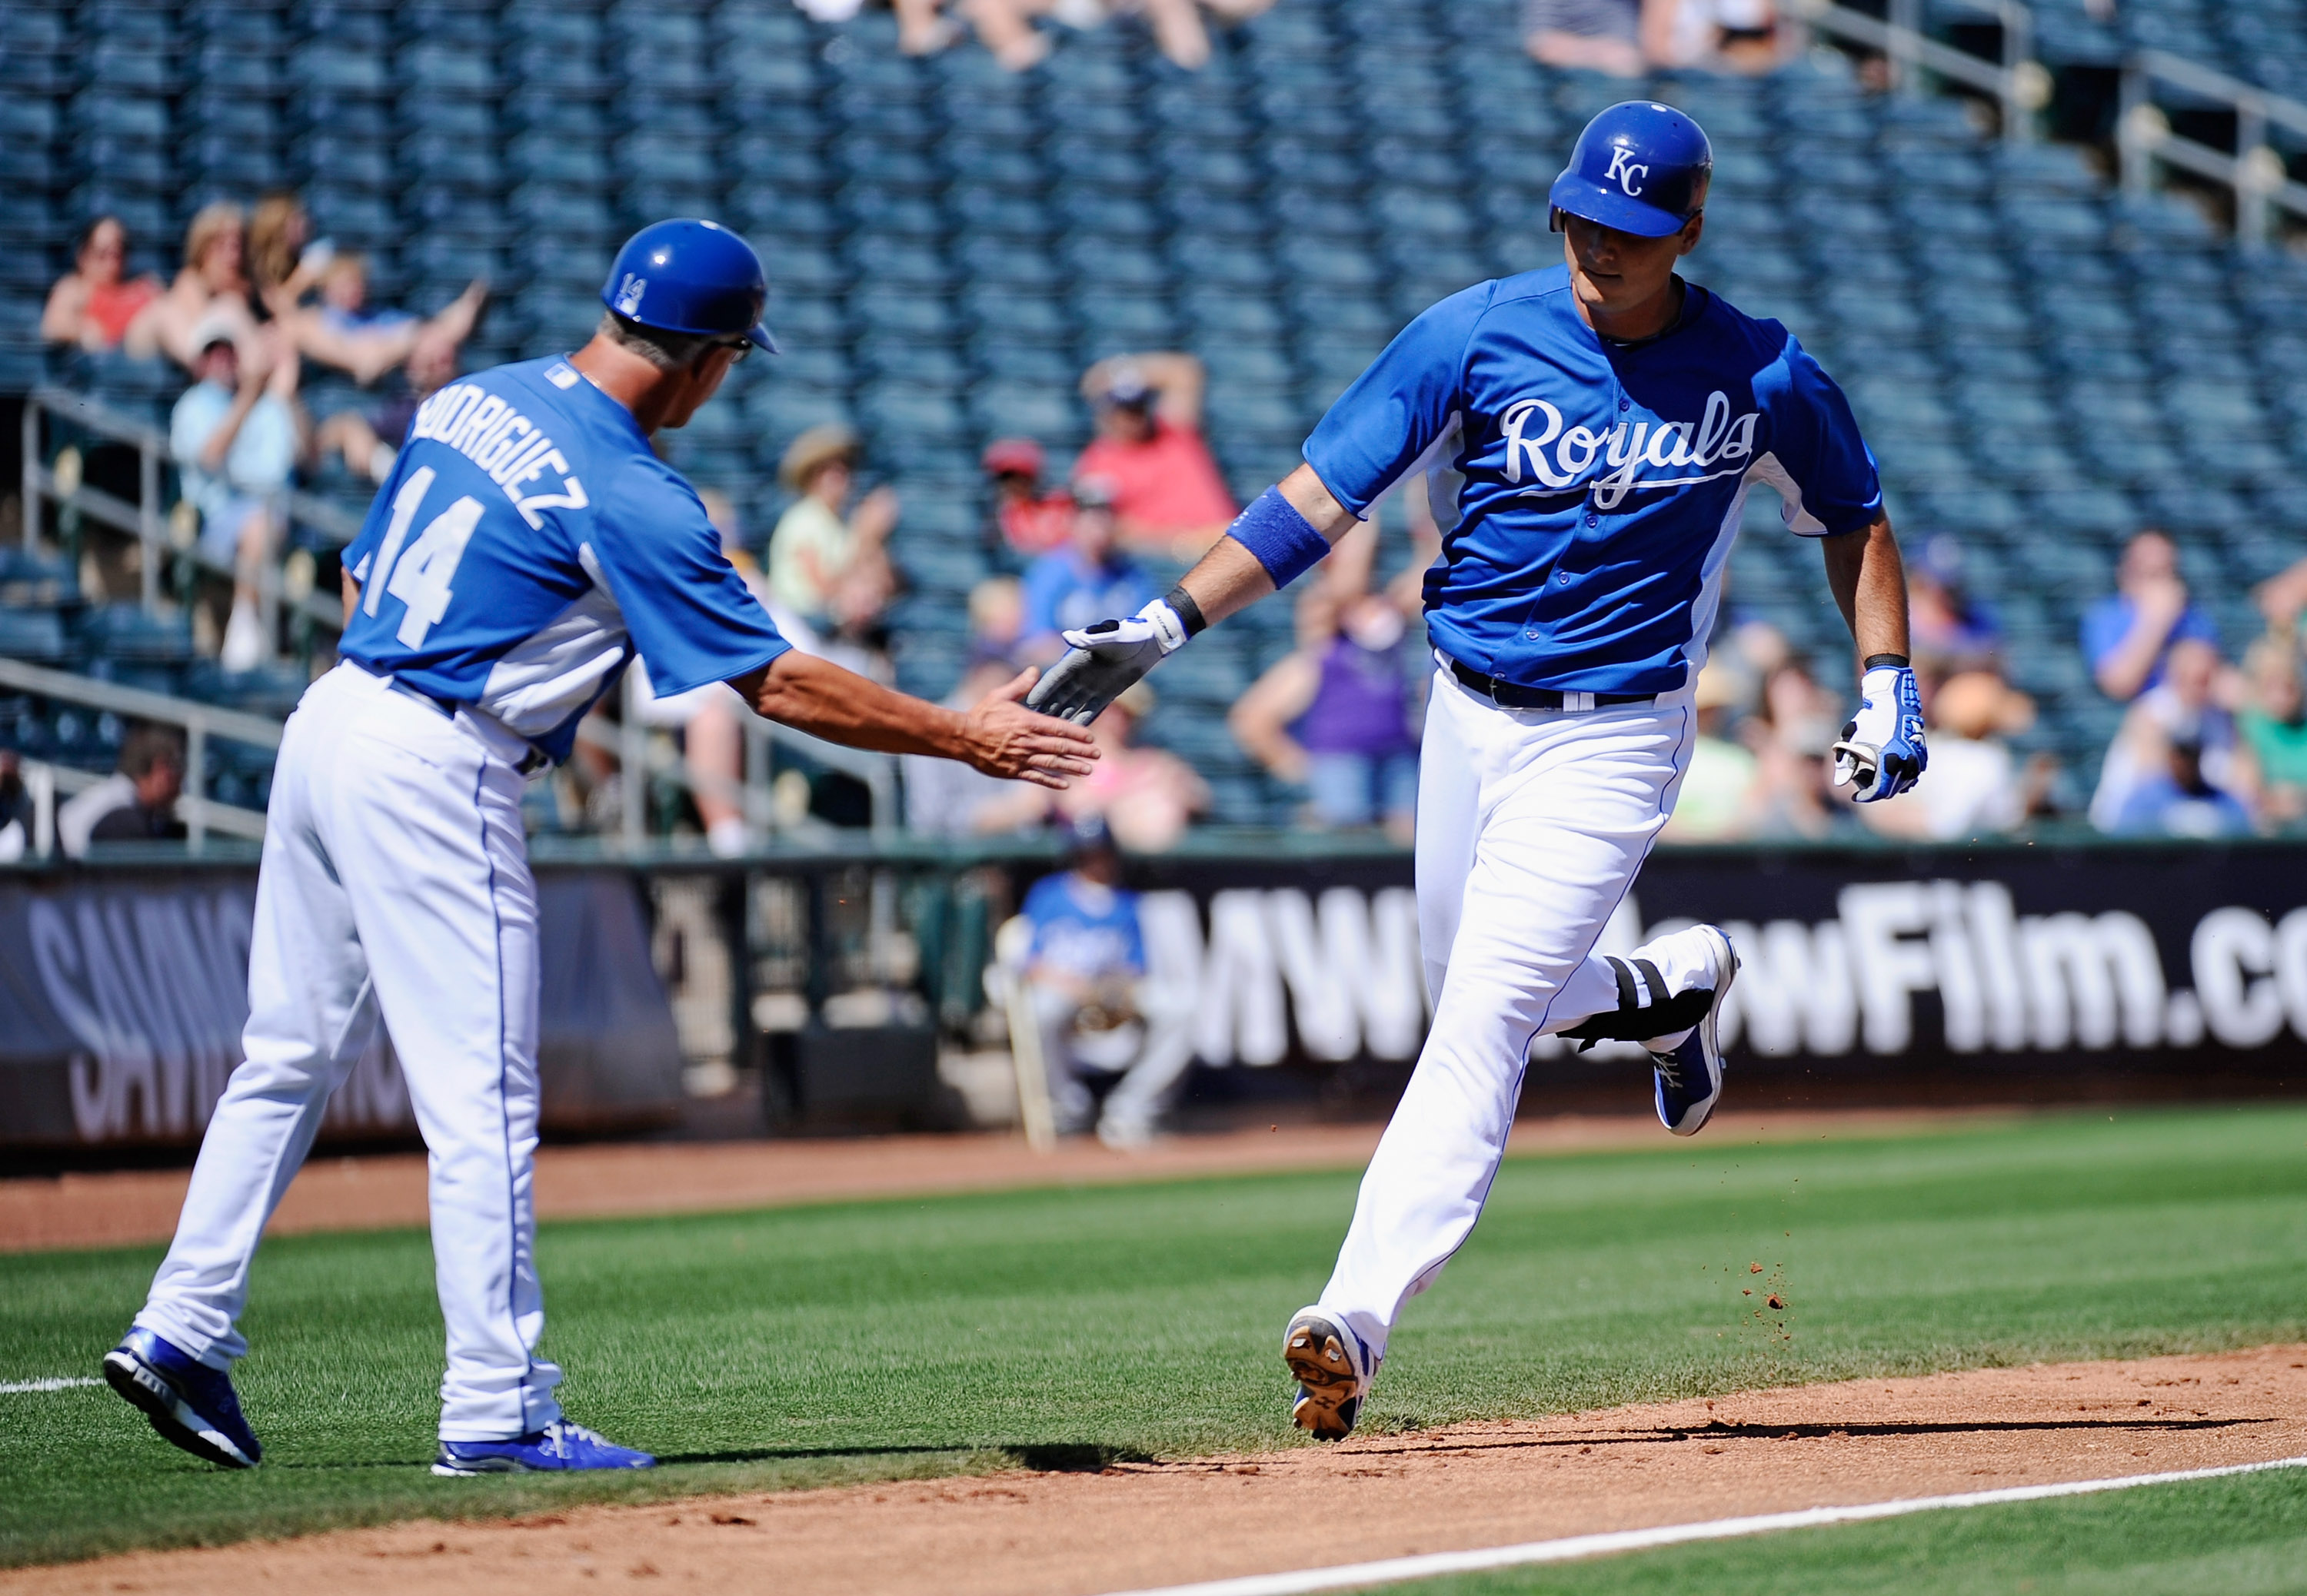 SURPRISE, AZ - MARCH 12:  Clint Robinson #25 of the Kansas City Royals is congratulated by the thrid base coach Eddie Rodriguez #14 aftet hitting a one run home run during the first inning of the spring training baseball game against the Los Angeles Dodge